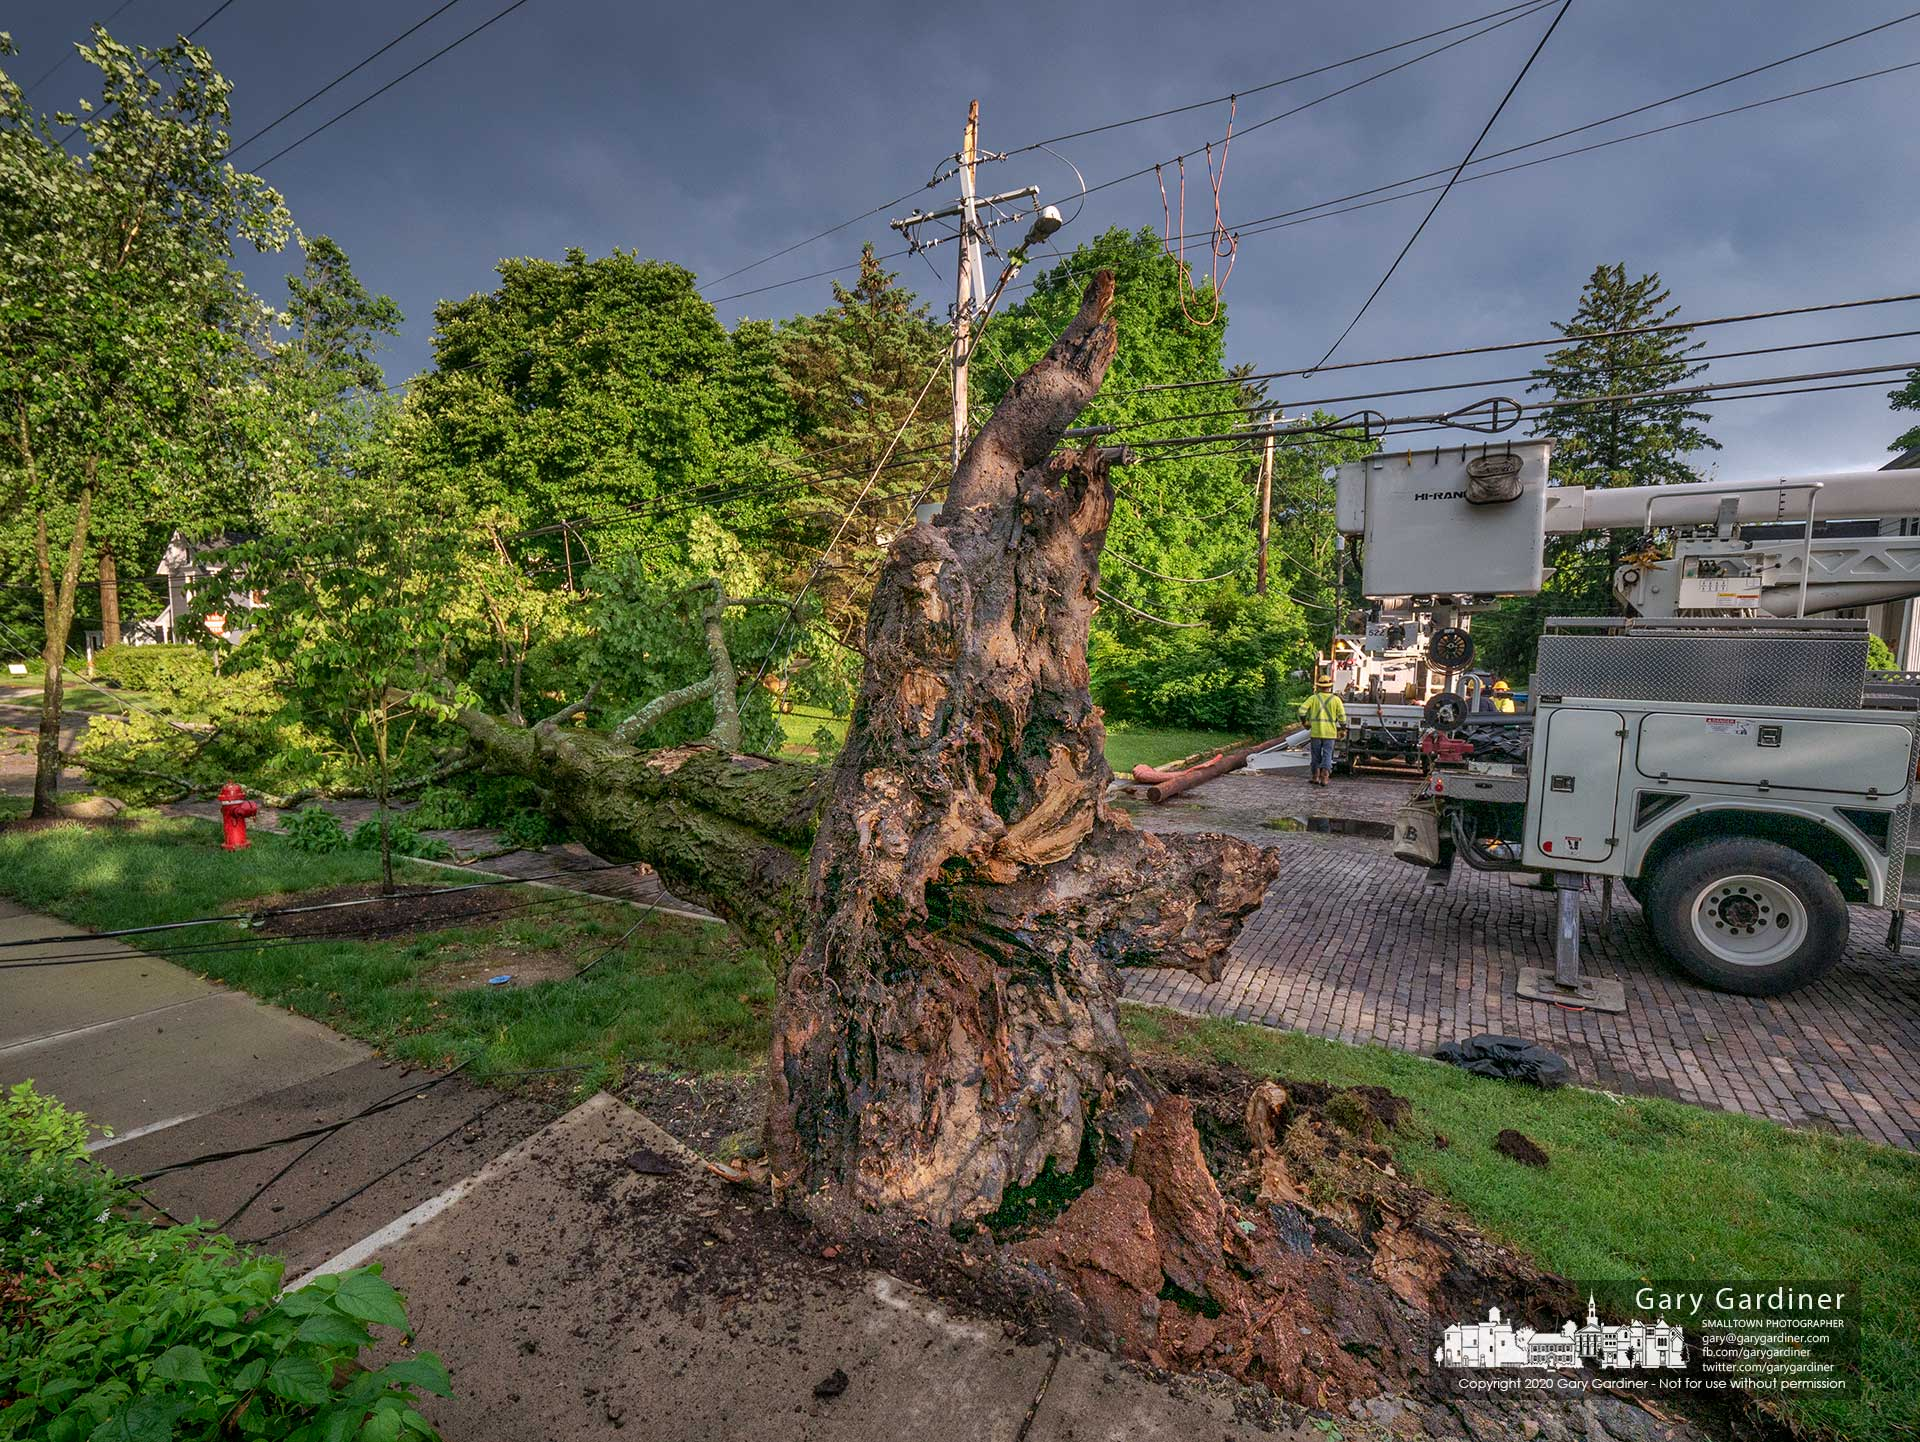 Westerville Electric Department workers begin the process of replacing a utility pole damaged when a tree fell on it during an early evening thunderstorm knocking out power to a neighborhood, Uptown, and portions of State Street. My Final Photo for June 10, 2020.